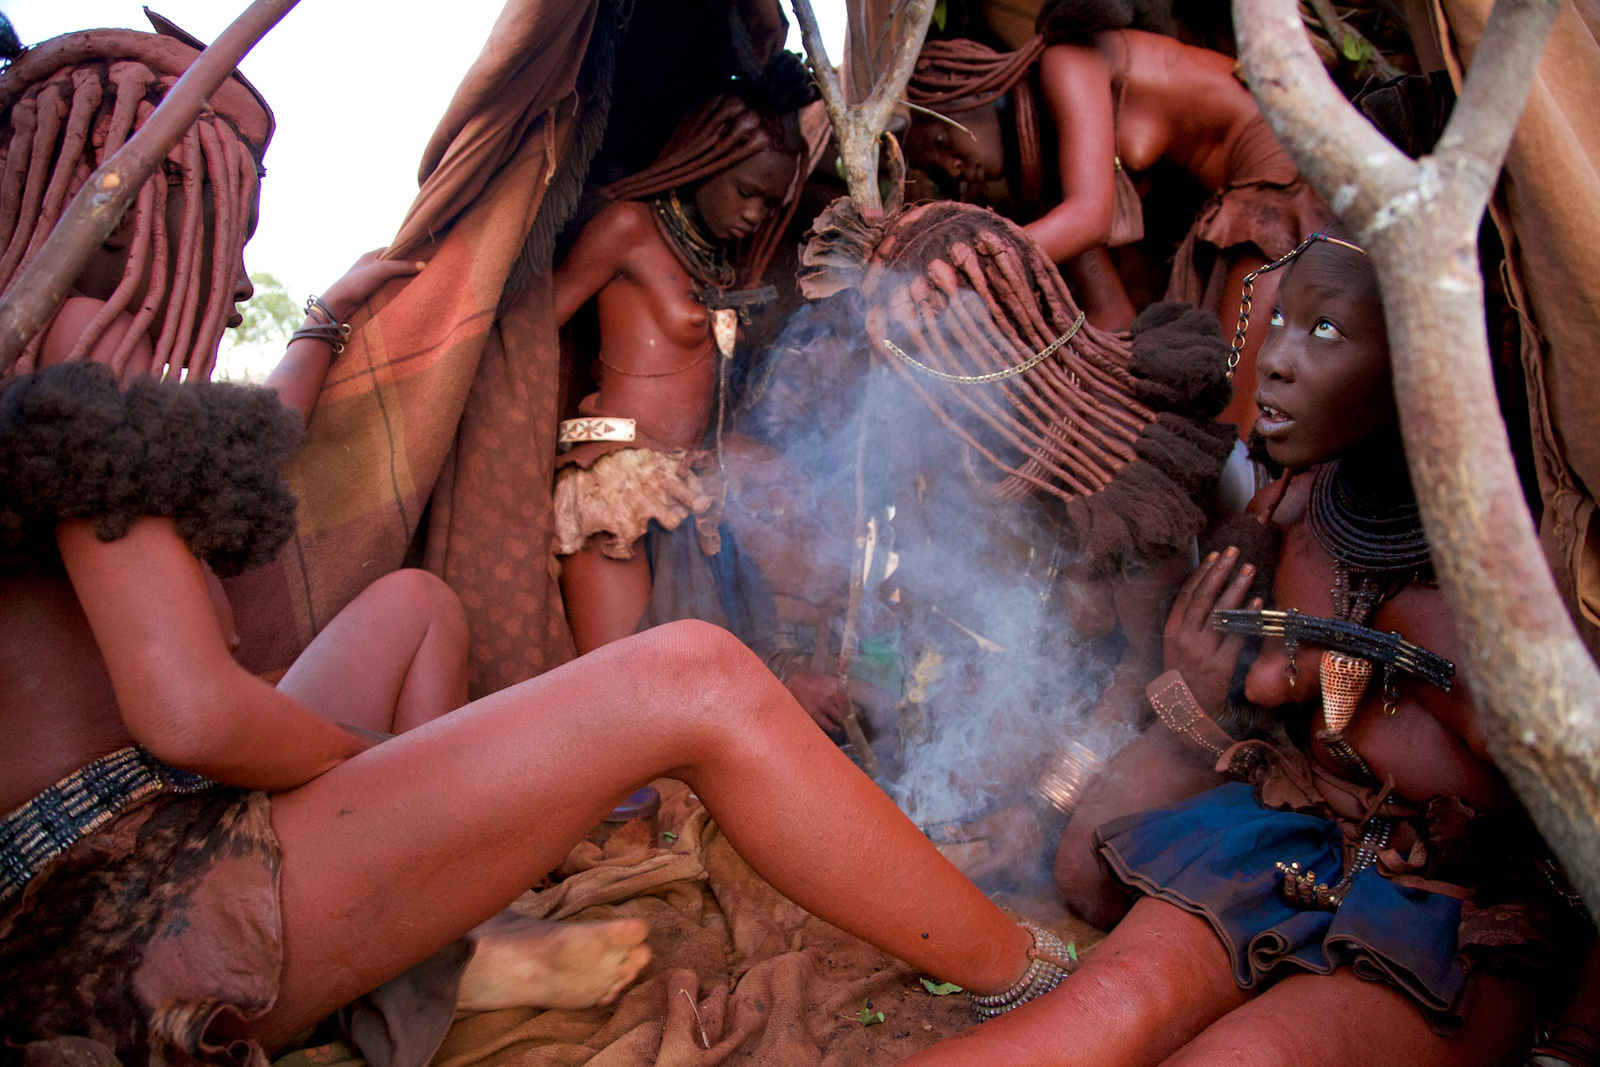 Crazy africa tribal man sex - free watch and download